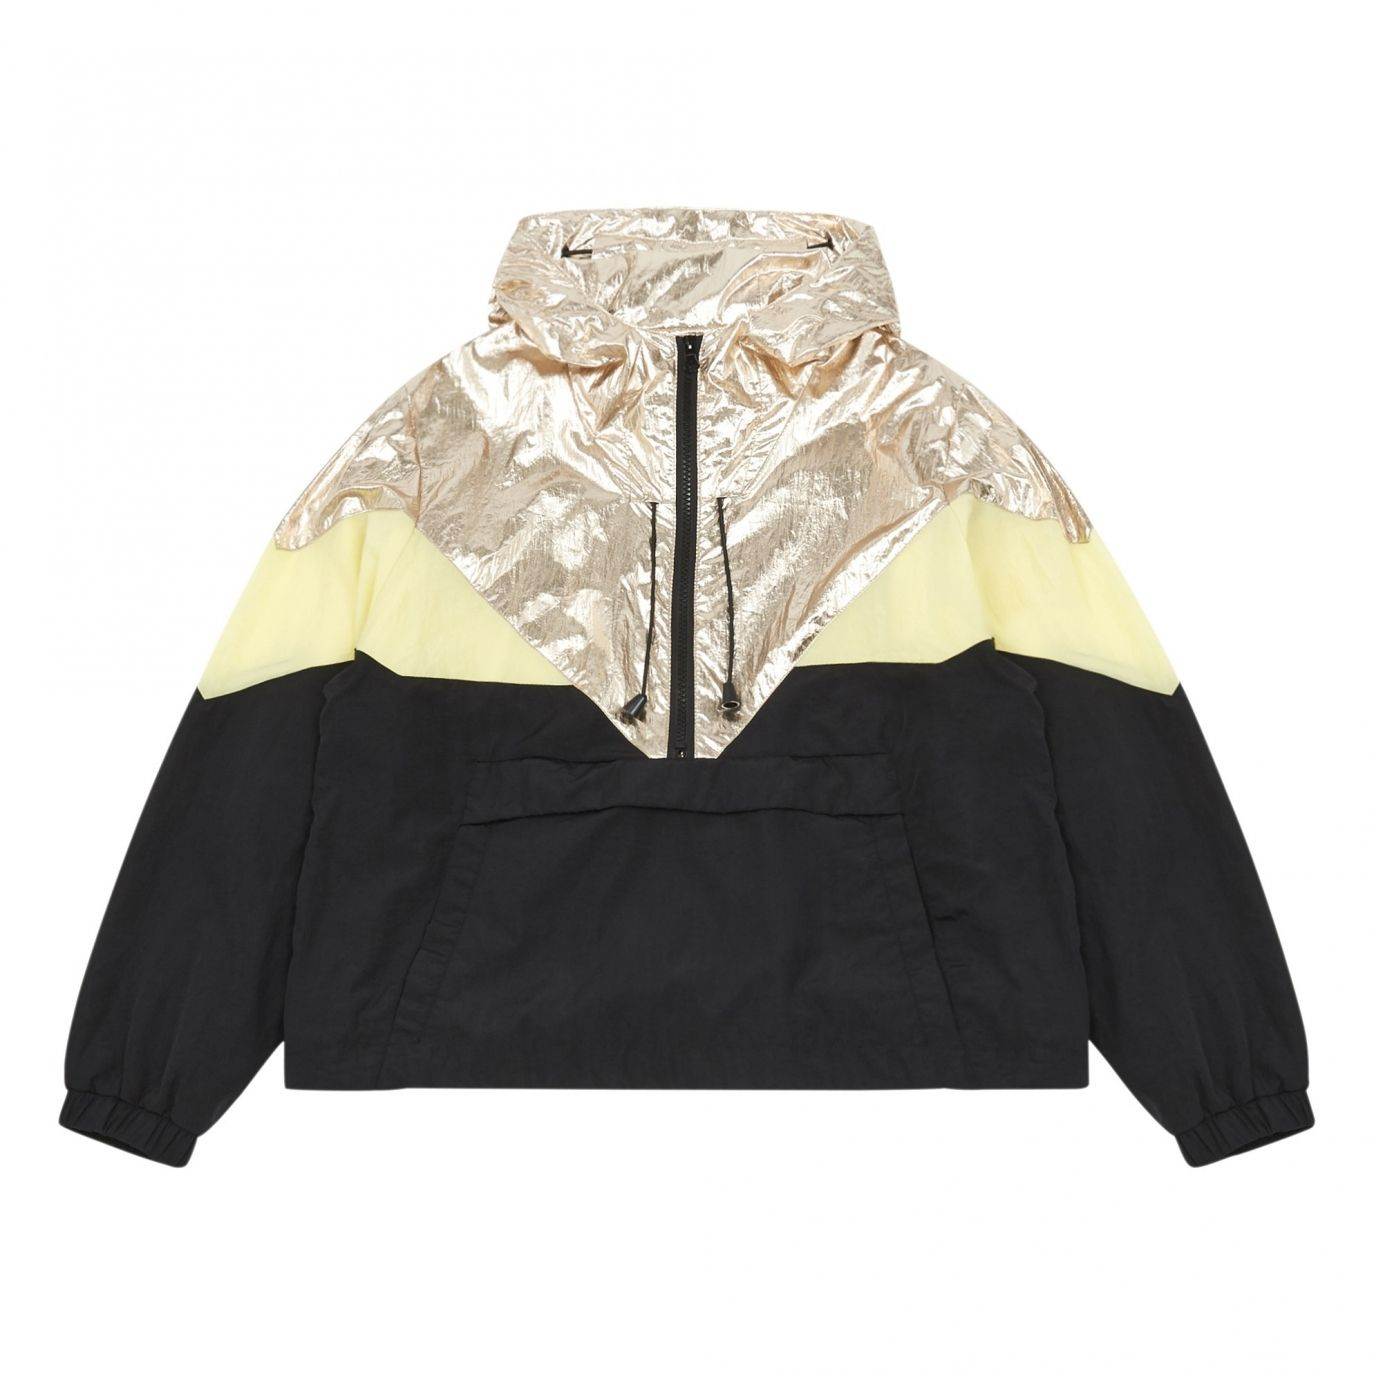 Les Coyotes de Paris - Joanne Jacket Multicolor - 1